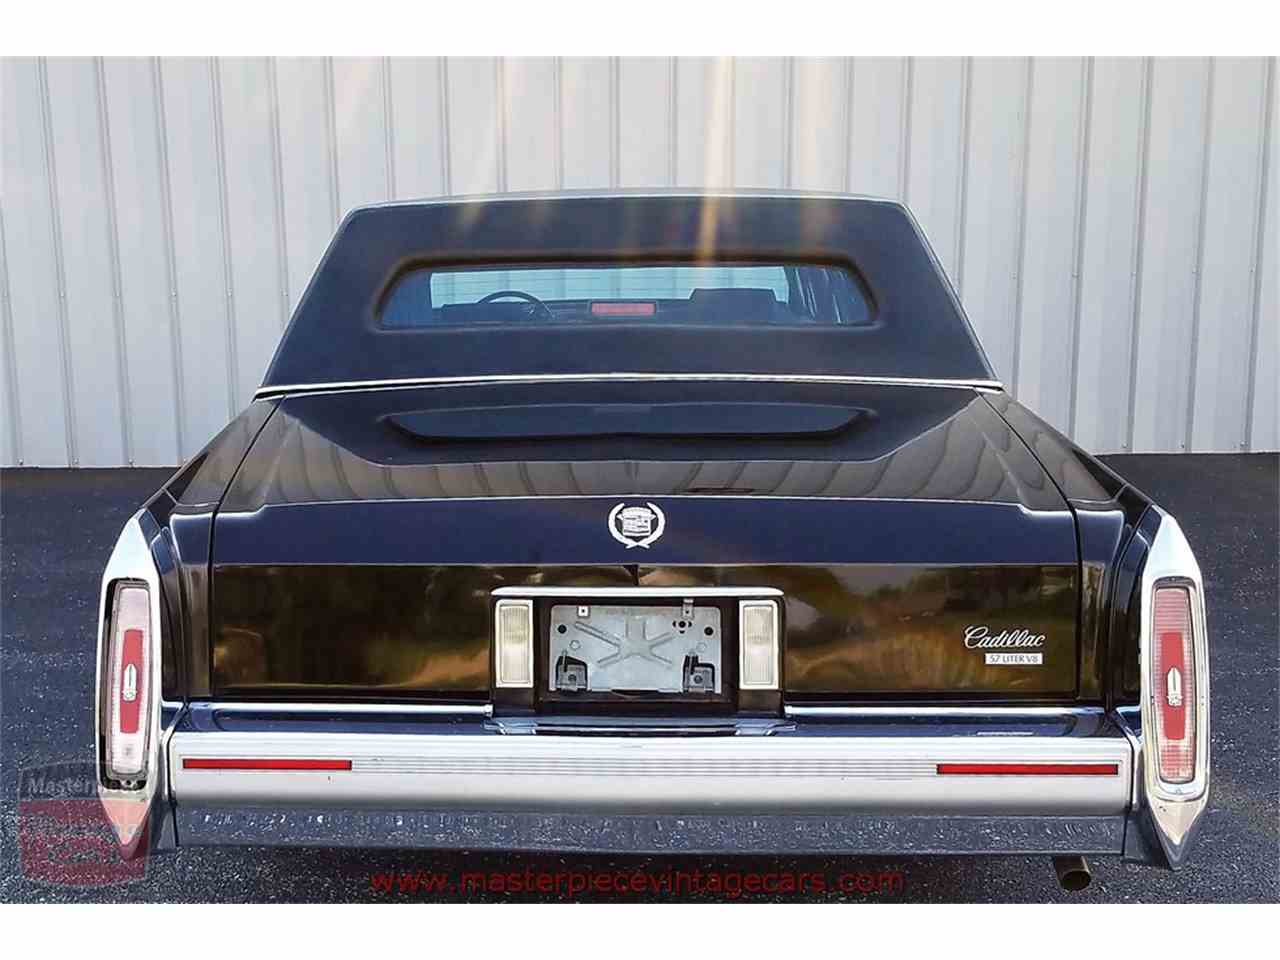 Large Picture of '91 Cadillac Limousine located in Whiteland Indiana - $9,950.00 Offered by Masterpiece Vintage Cars - L3S4